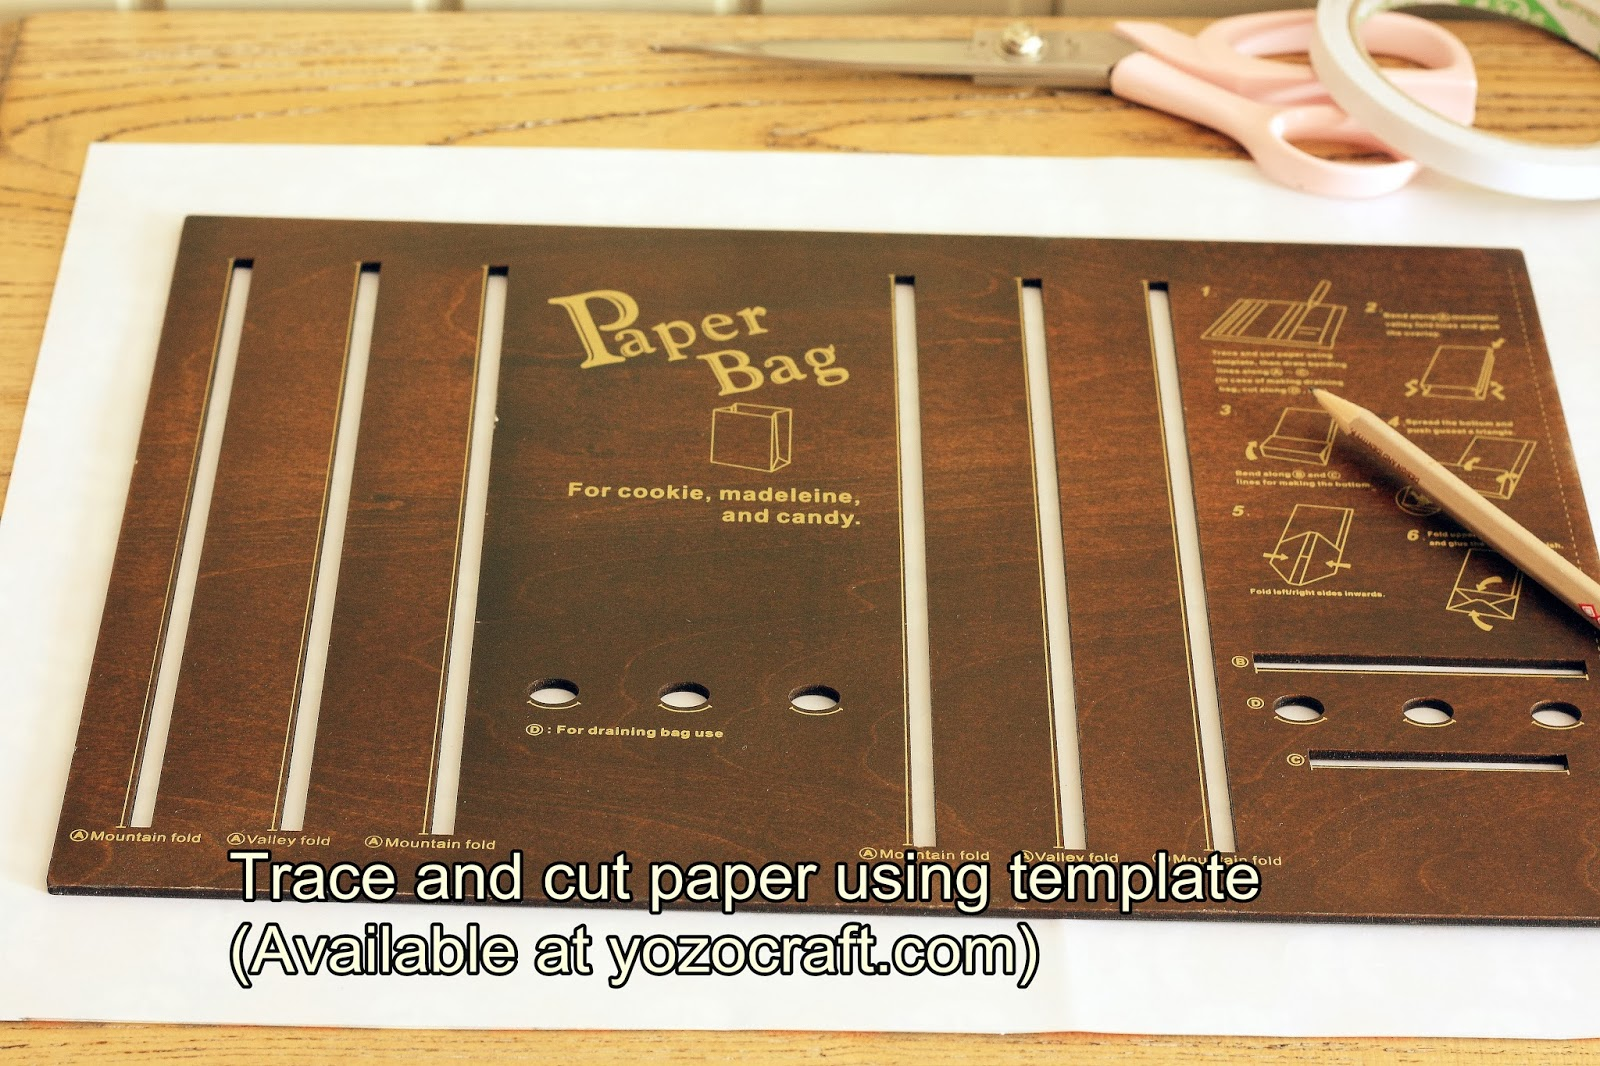 Yozo Craft How To Make Gift Bag By Using Template